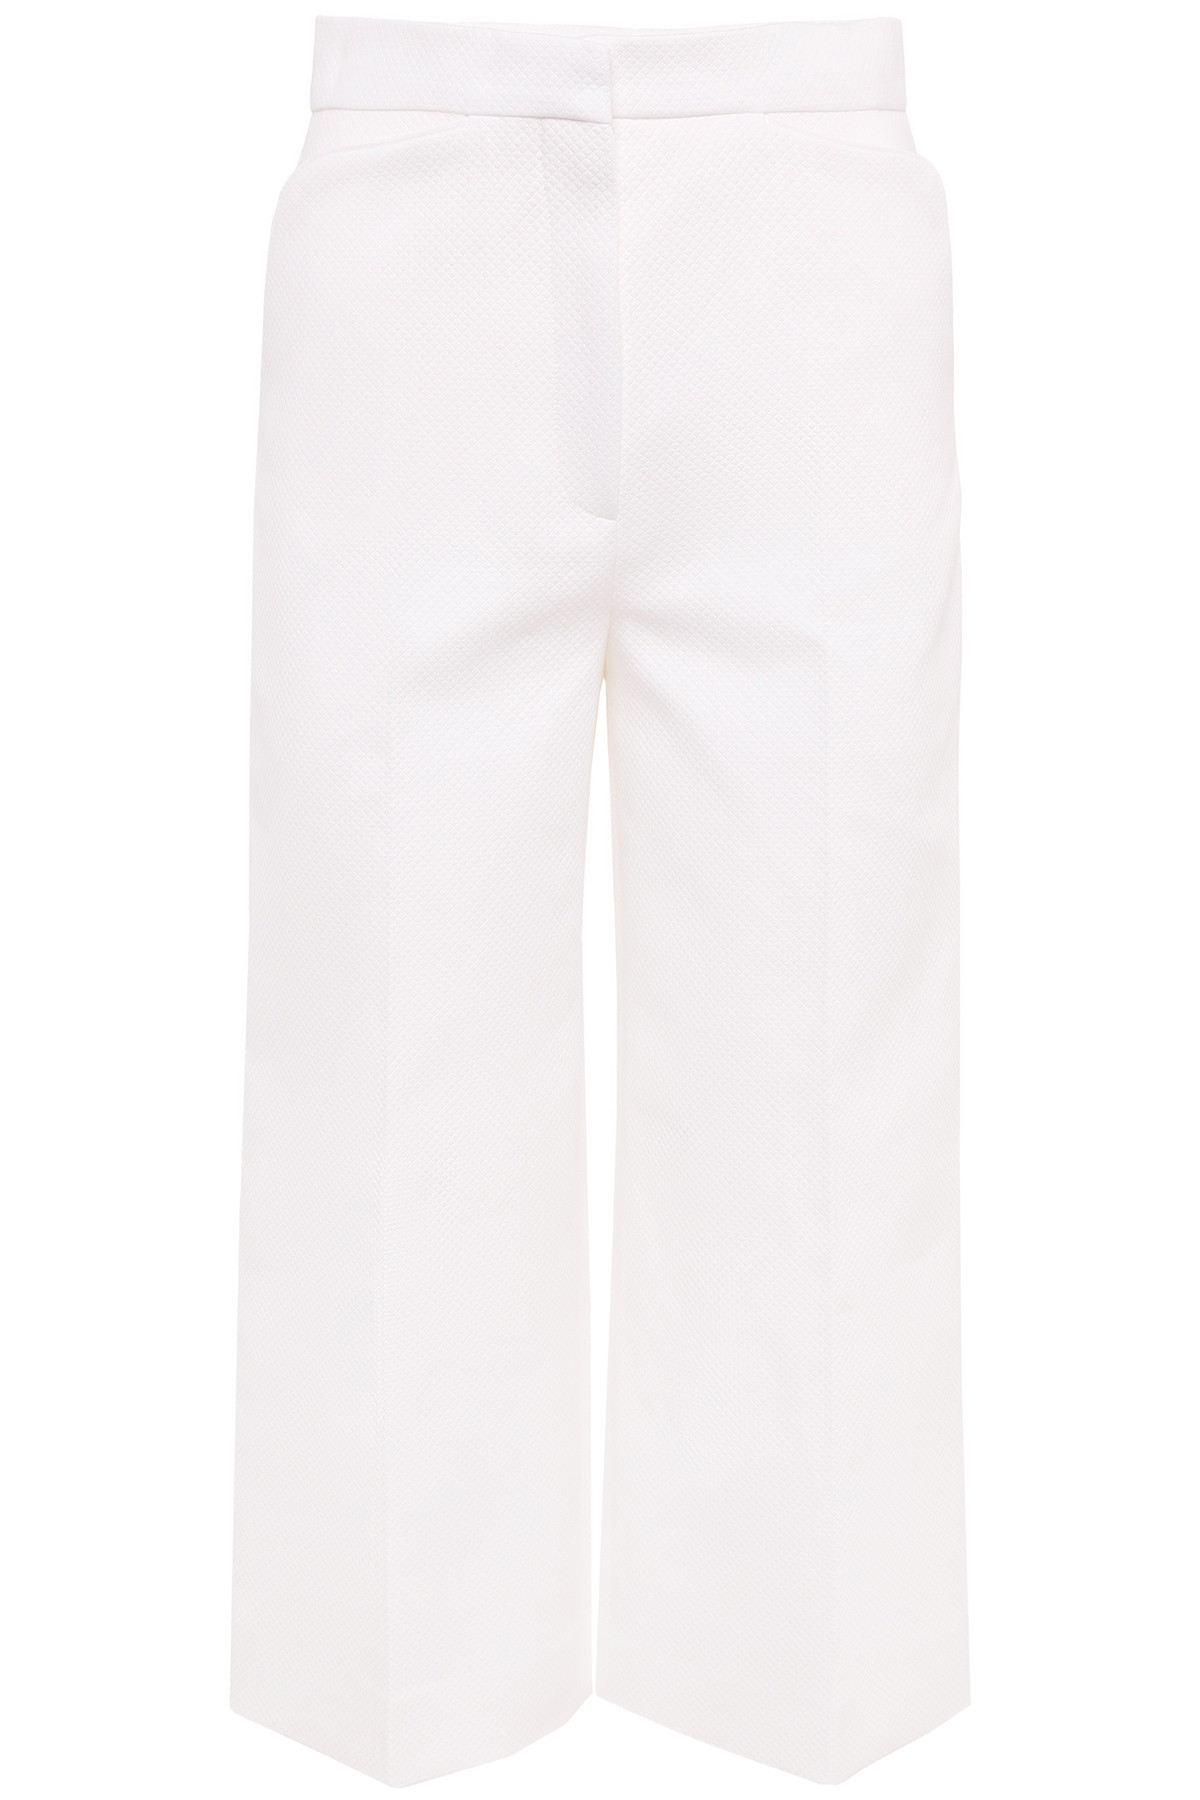 DIOR Piquet Cropped Trousers